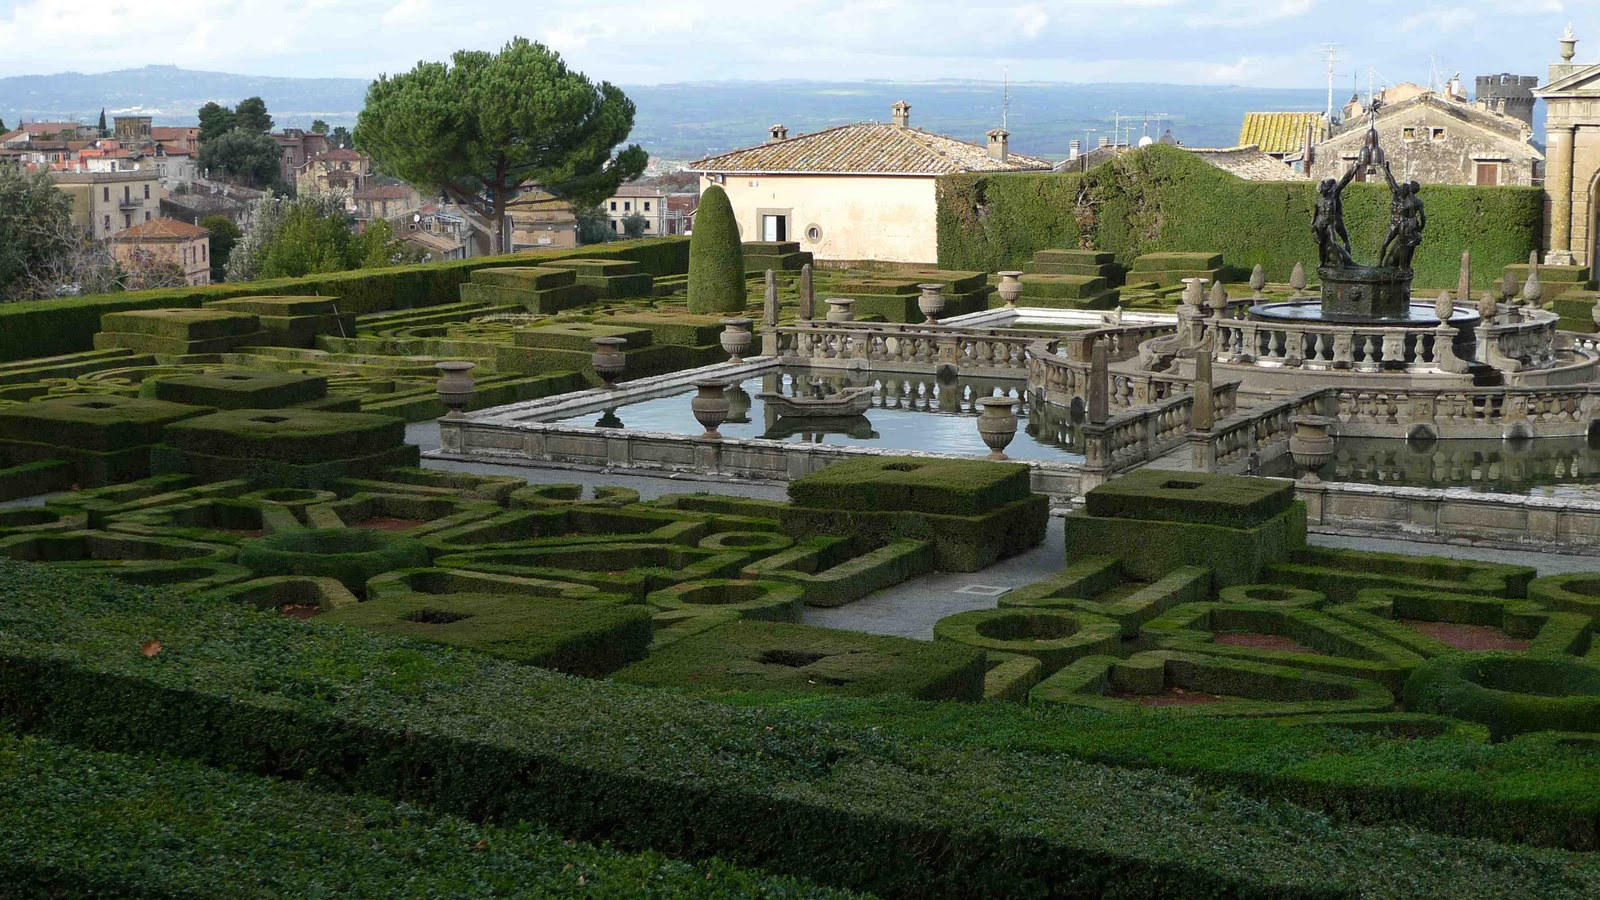 Jeffrey Bale39s World Of Gardens The Gardens Of Southern Italy